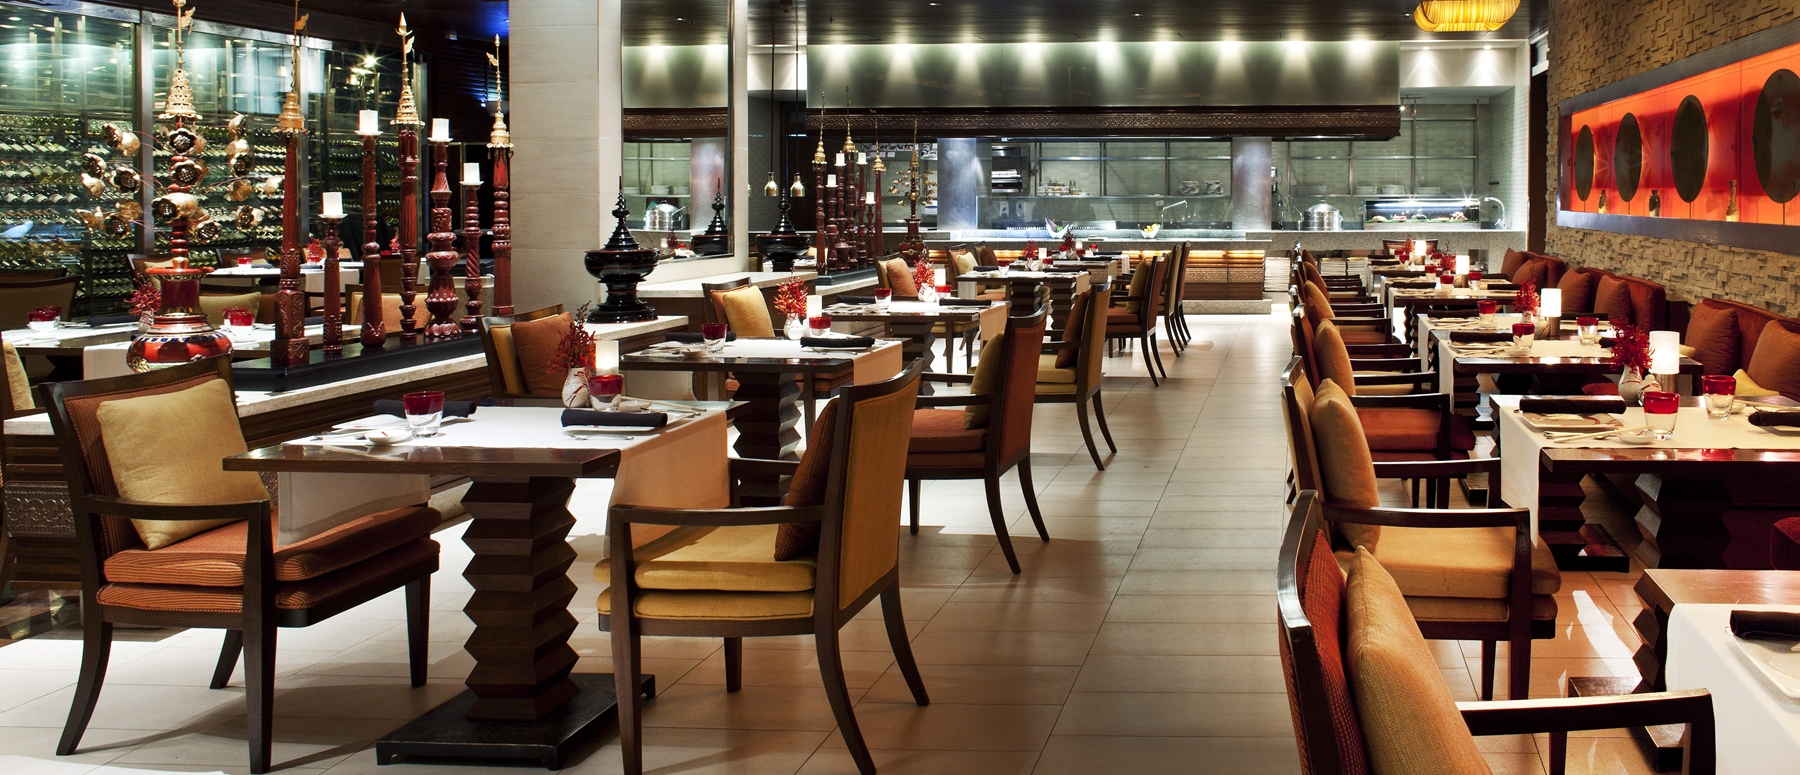 Fournisseur Chaises Restaurant Chairs Tables Your Customers Comfort Is Our Goal